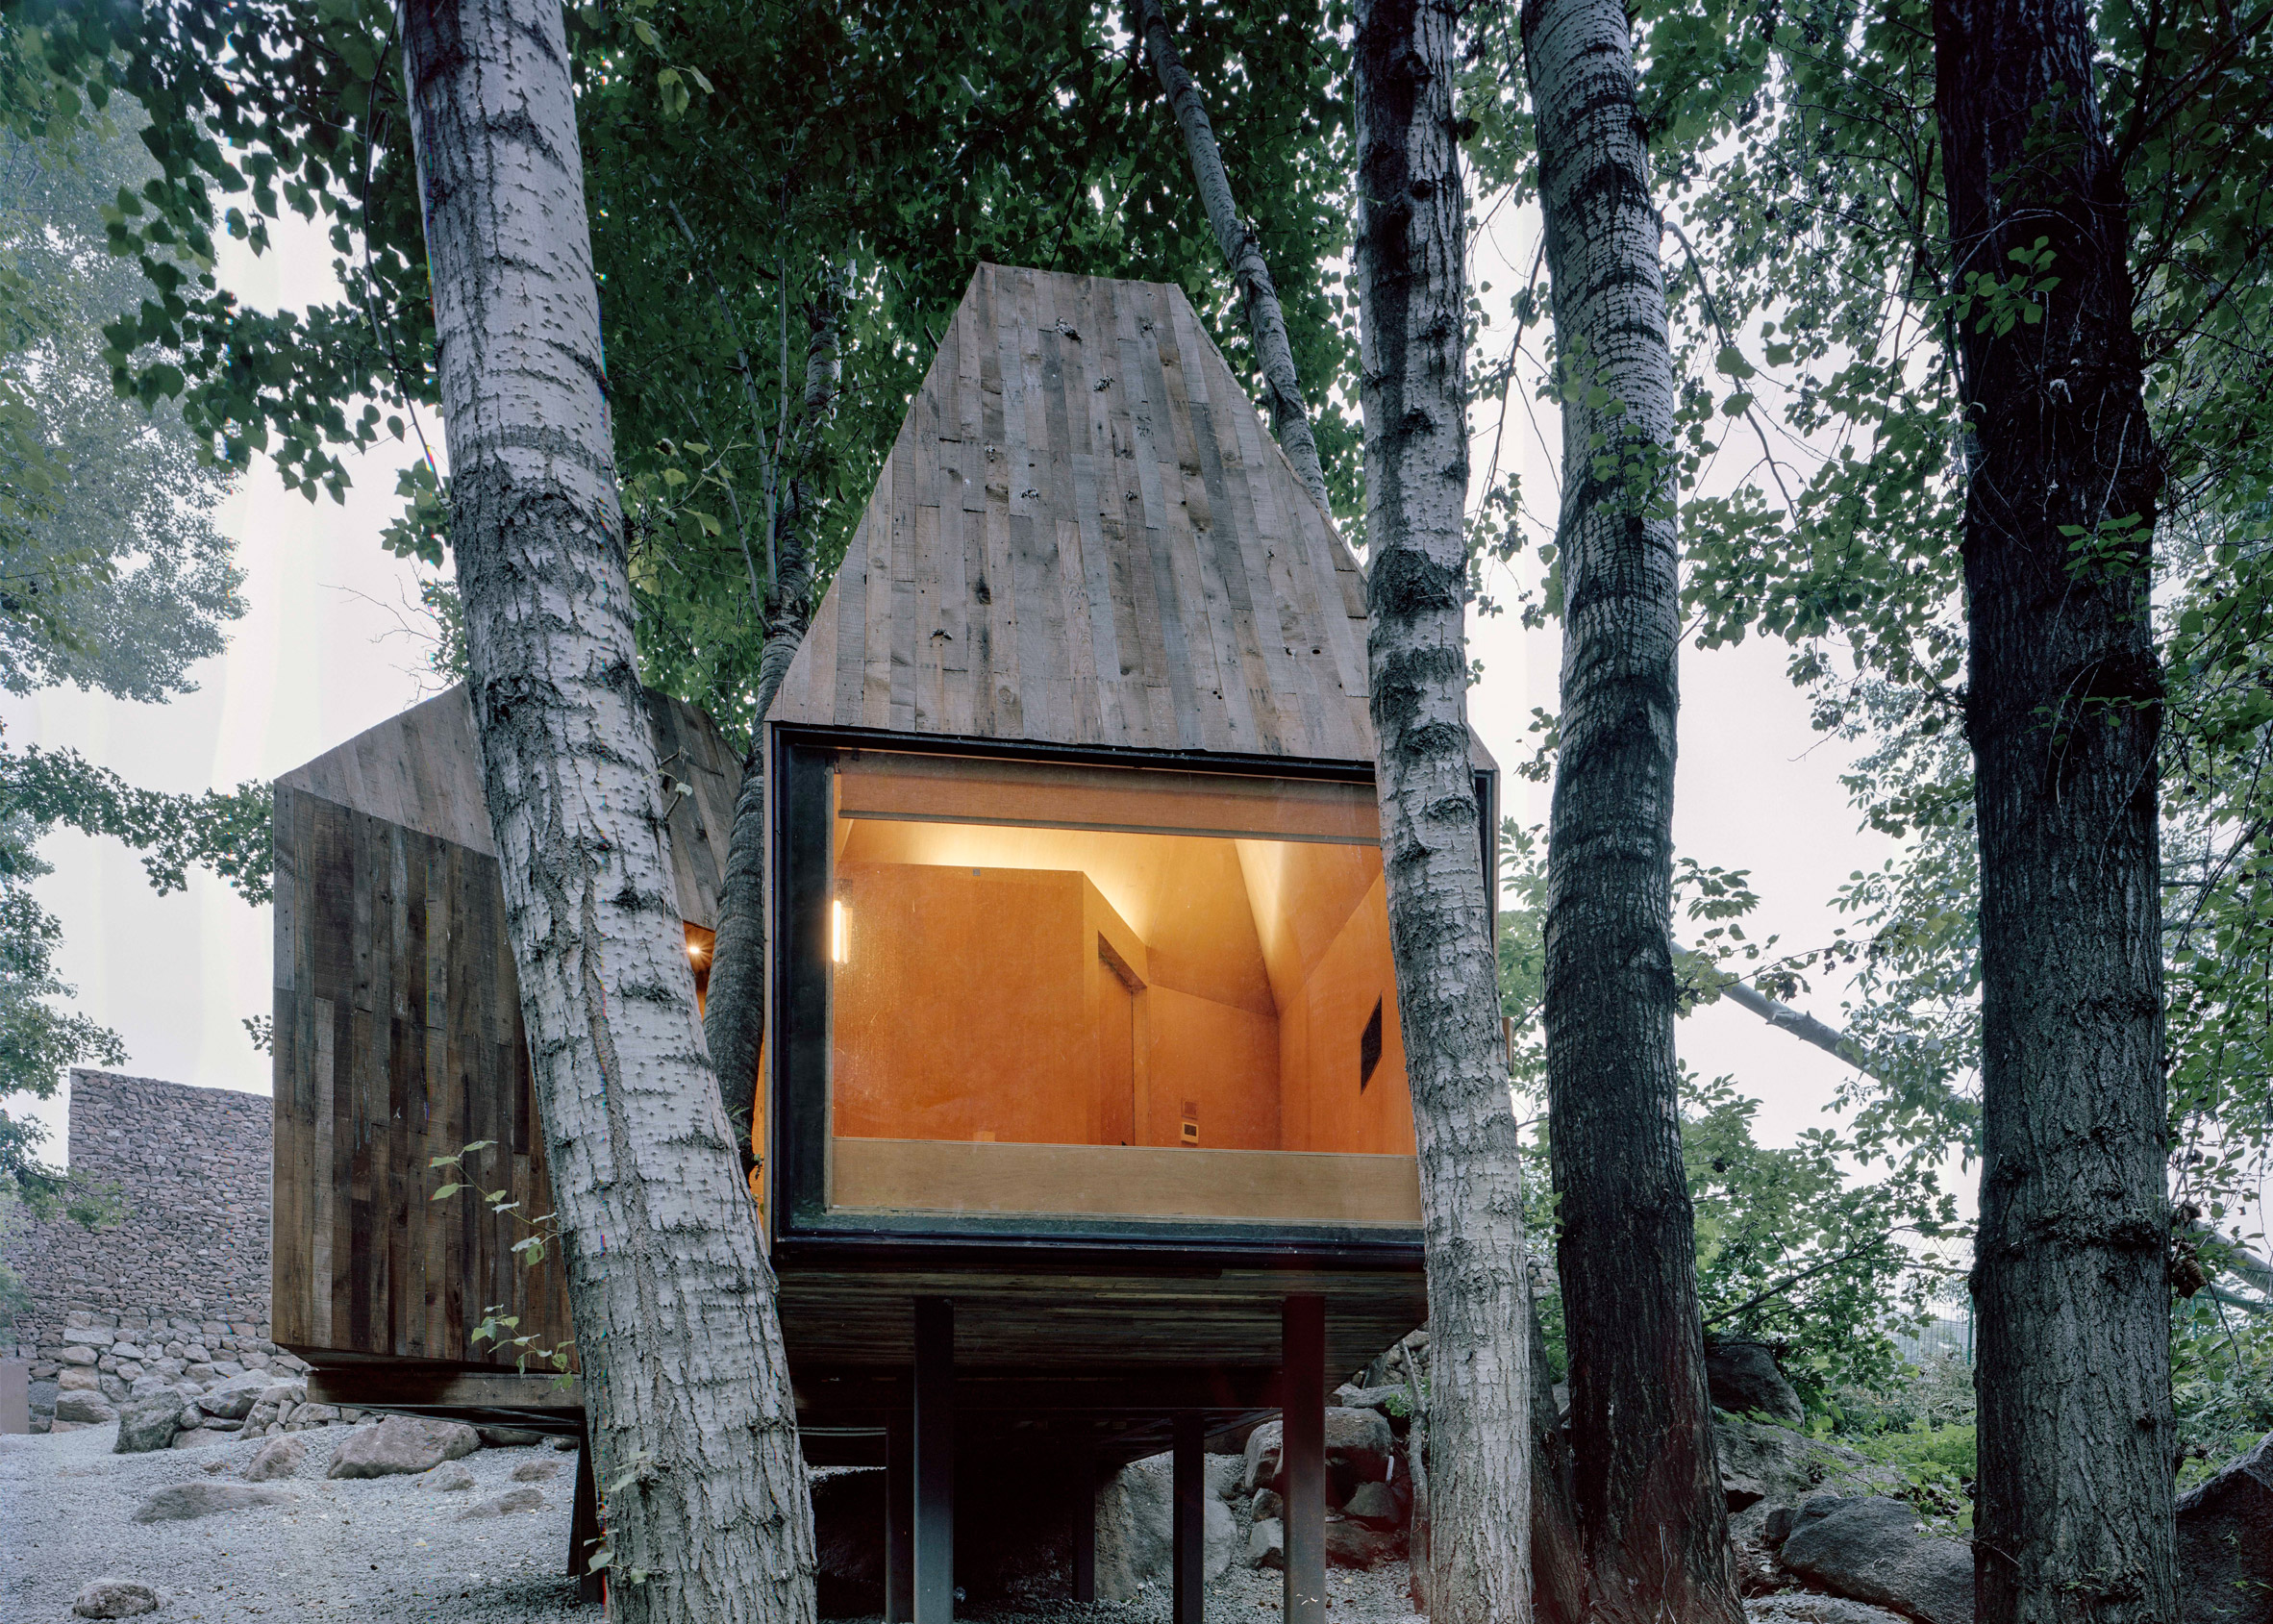 The Treehouse by Wee Studio